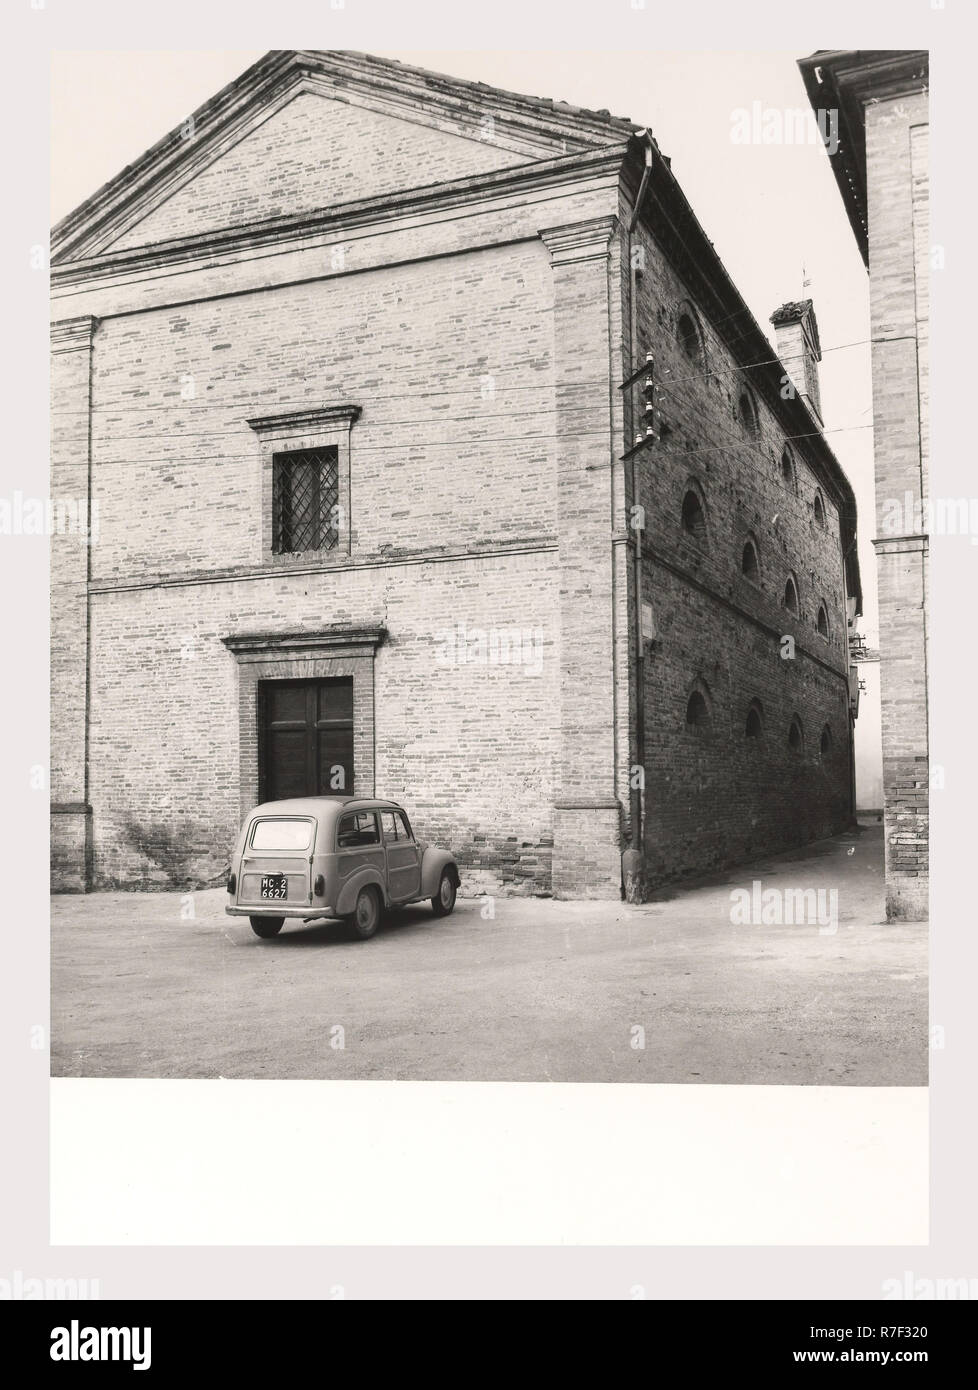 Marches Macerata Tolentino General views, this is my Italy, the italian country of visual history, Views of the Piazza della Liberta, the Torre dei Tre Orologi, the Palazzo Sangallo the palazzo Parisani, and also portals and a coat-of-arms from the historical center of Tolentino. Photo 1984 - Stock Image